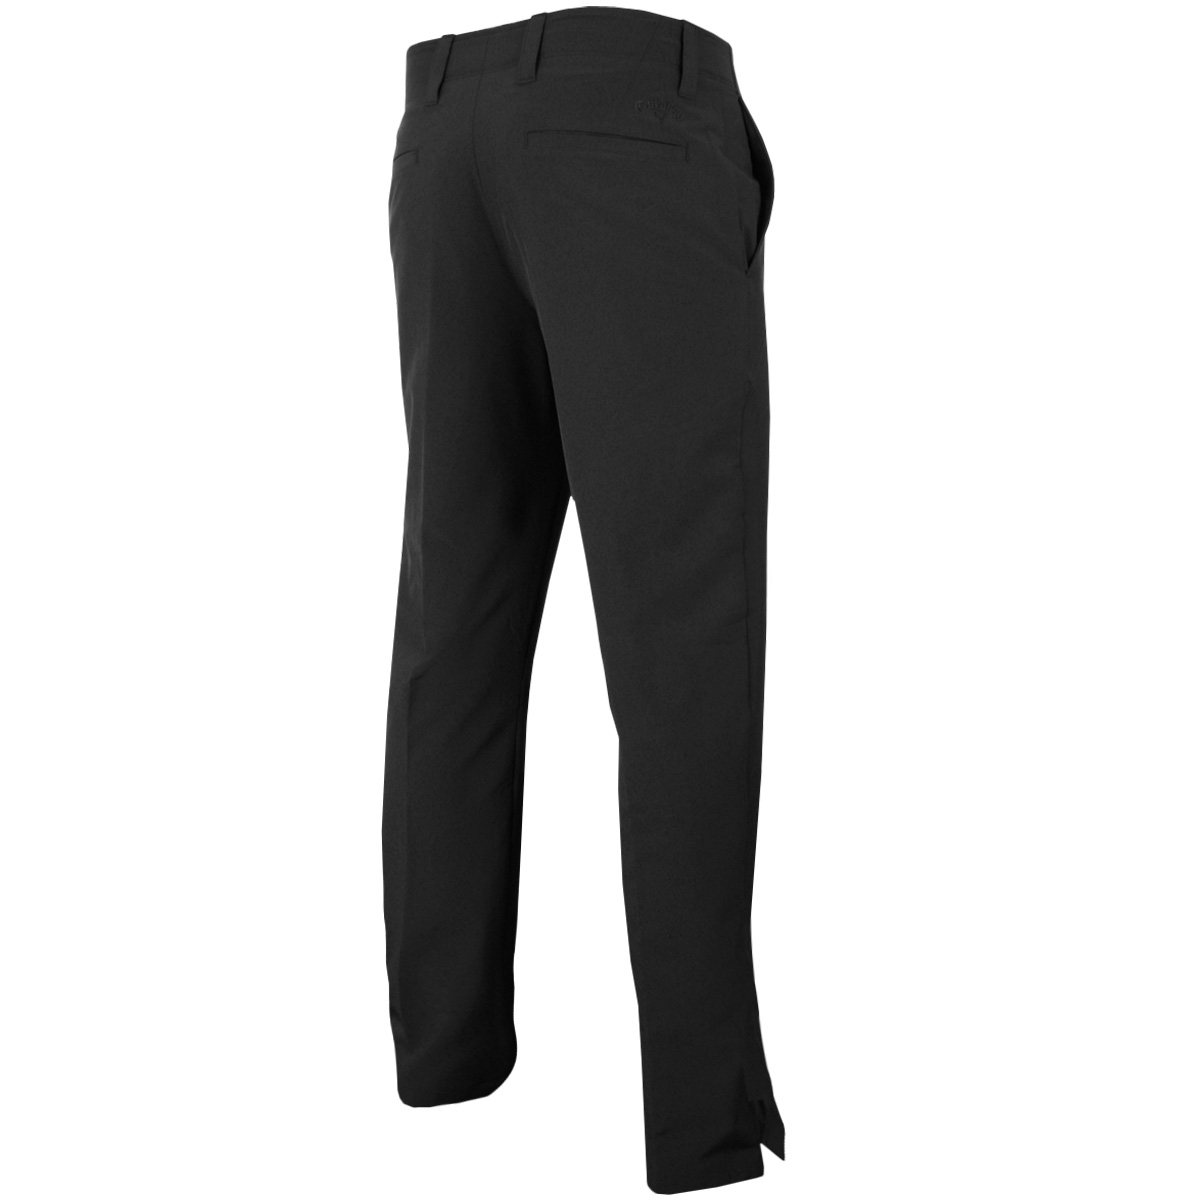 Callaway-Golf-Mens-2020-Chev-Tech-II-Lightweight-Golf-Trousers-27-OFF-RRP thumbnail 6